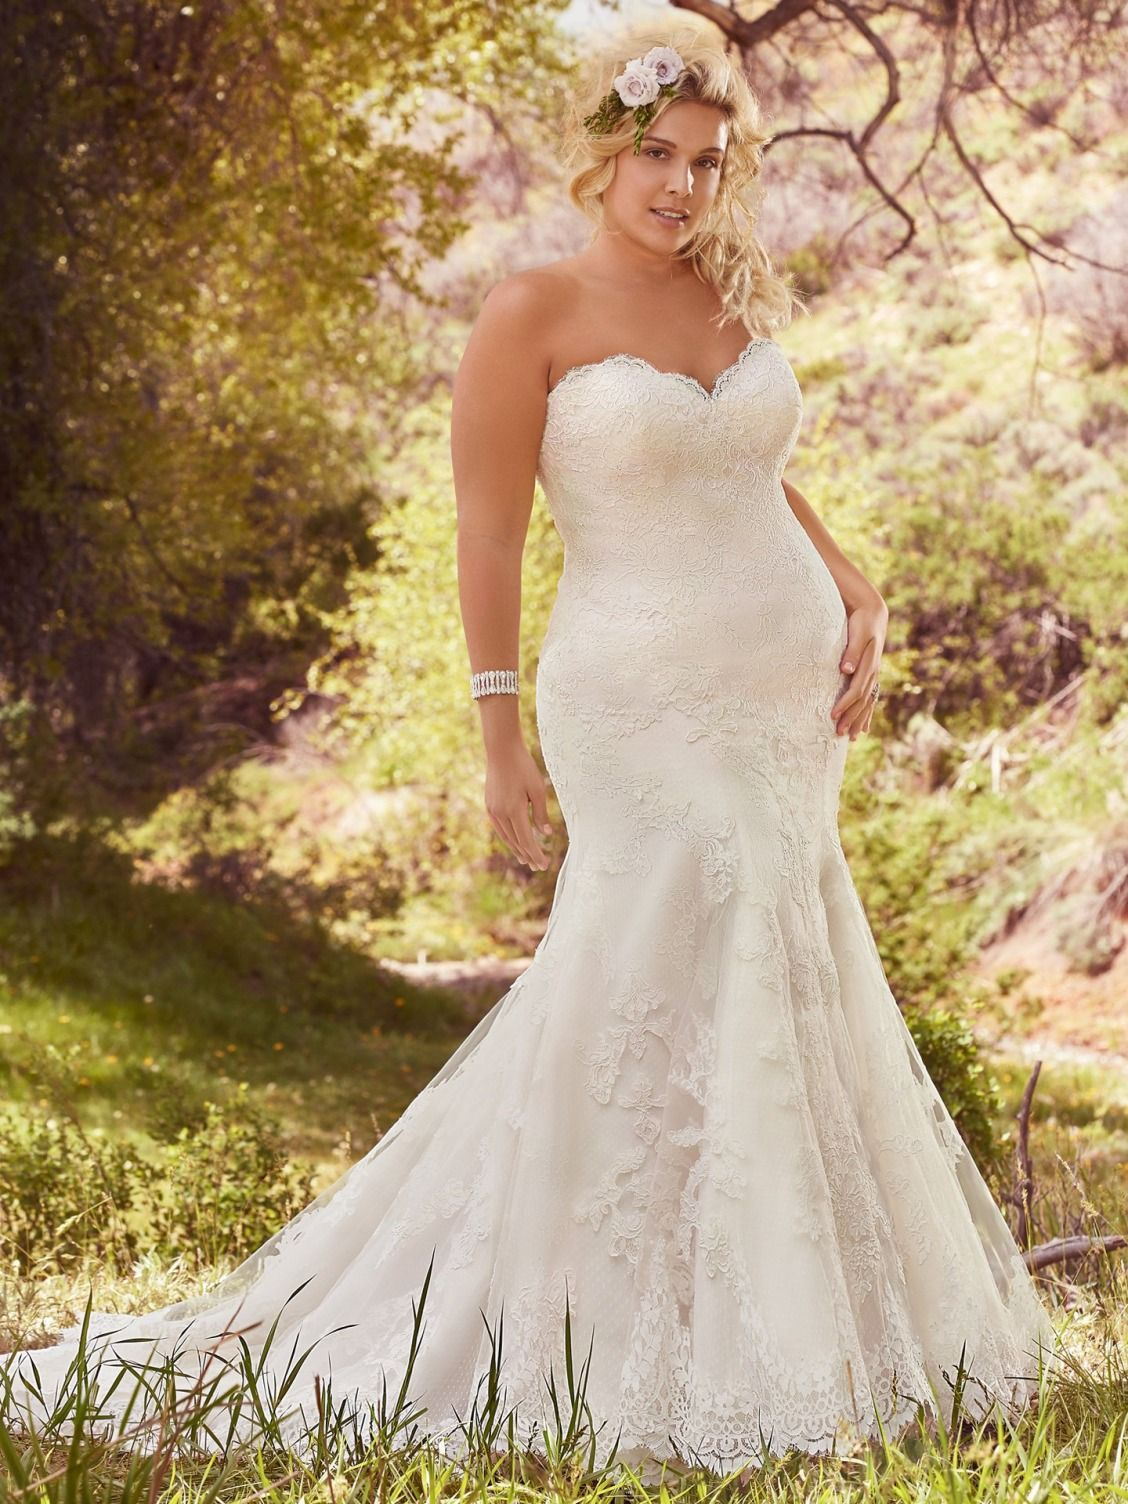 dba1ceba398 CADENCE by Maggie Sottero Wedding Dresses in 2019